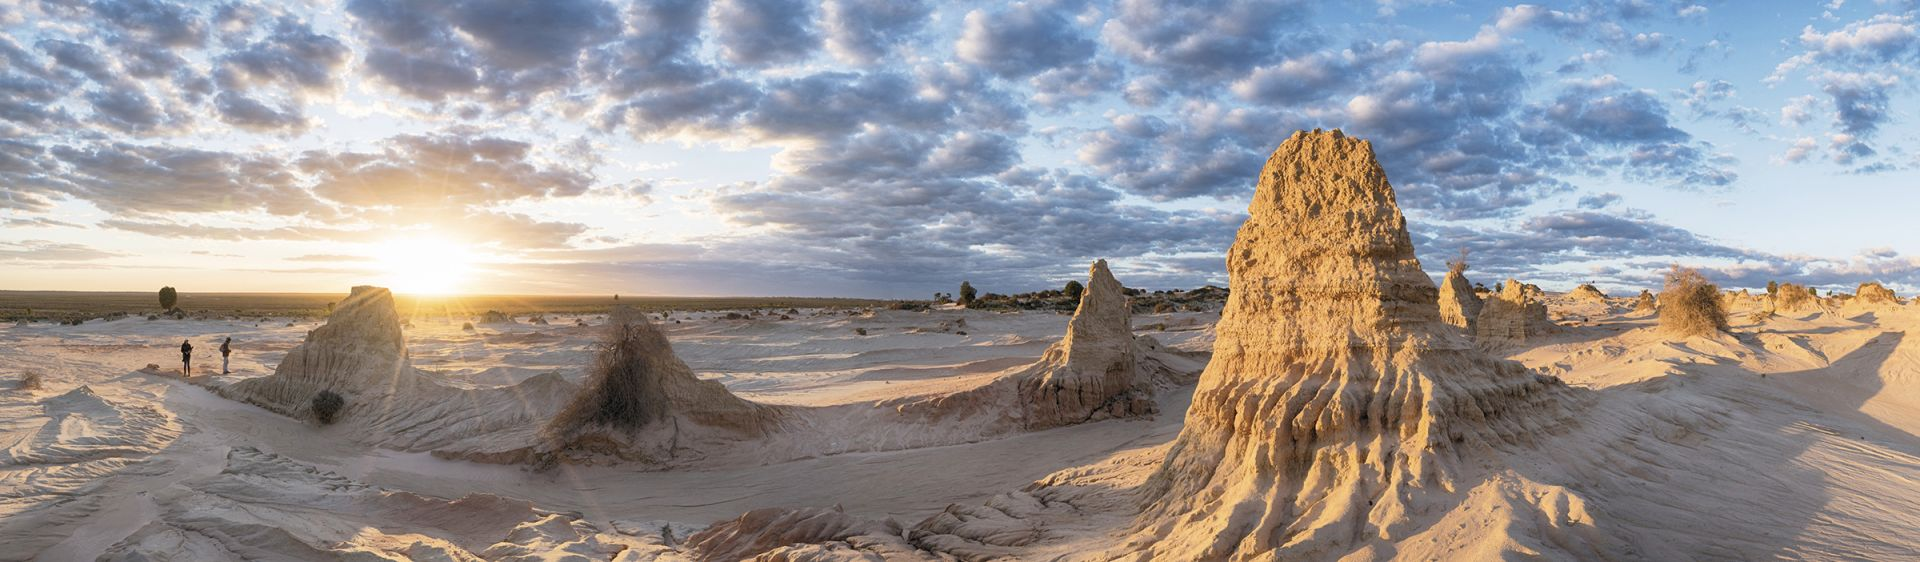 The spectacular Walls of China rock formations in Mungo National Park